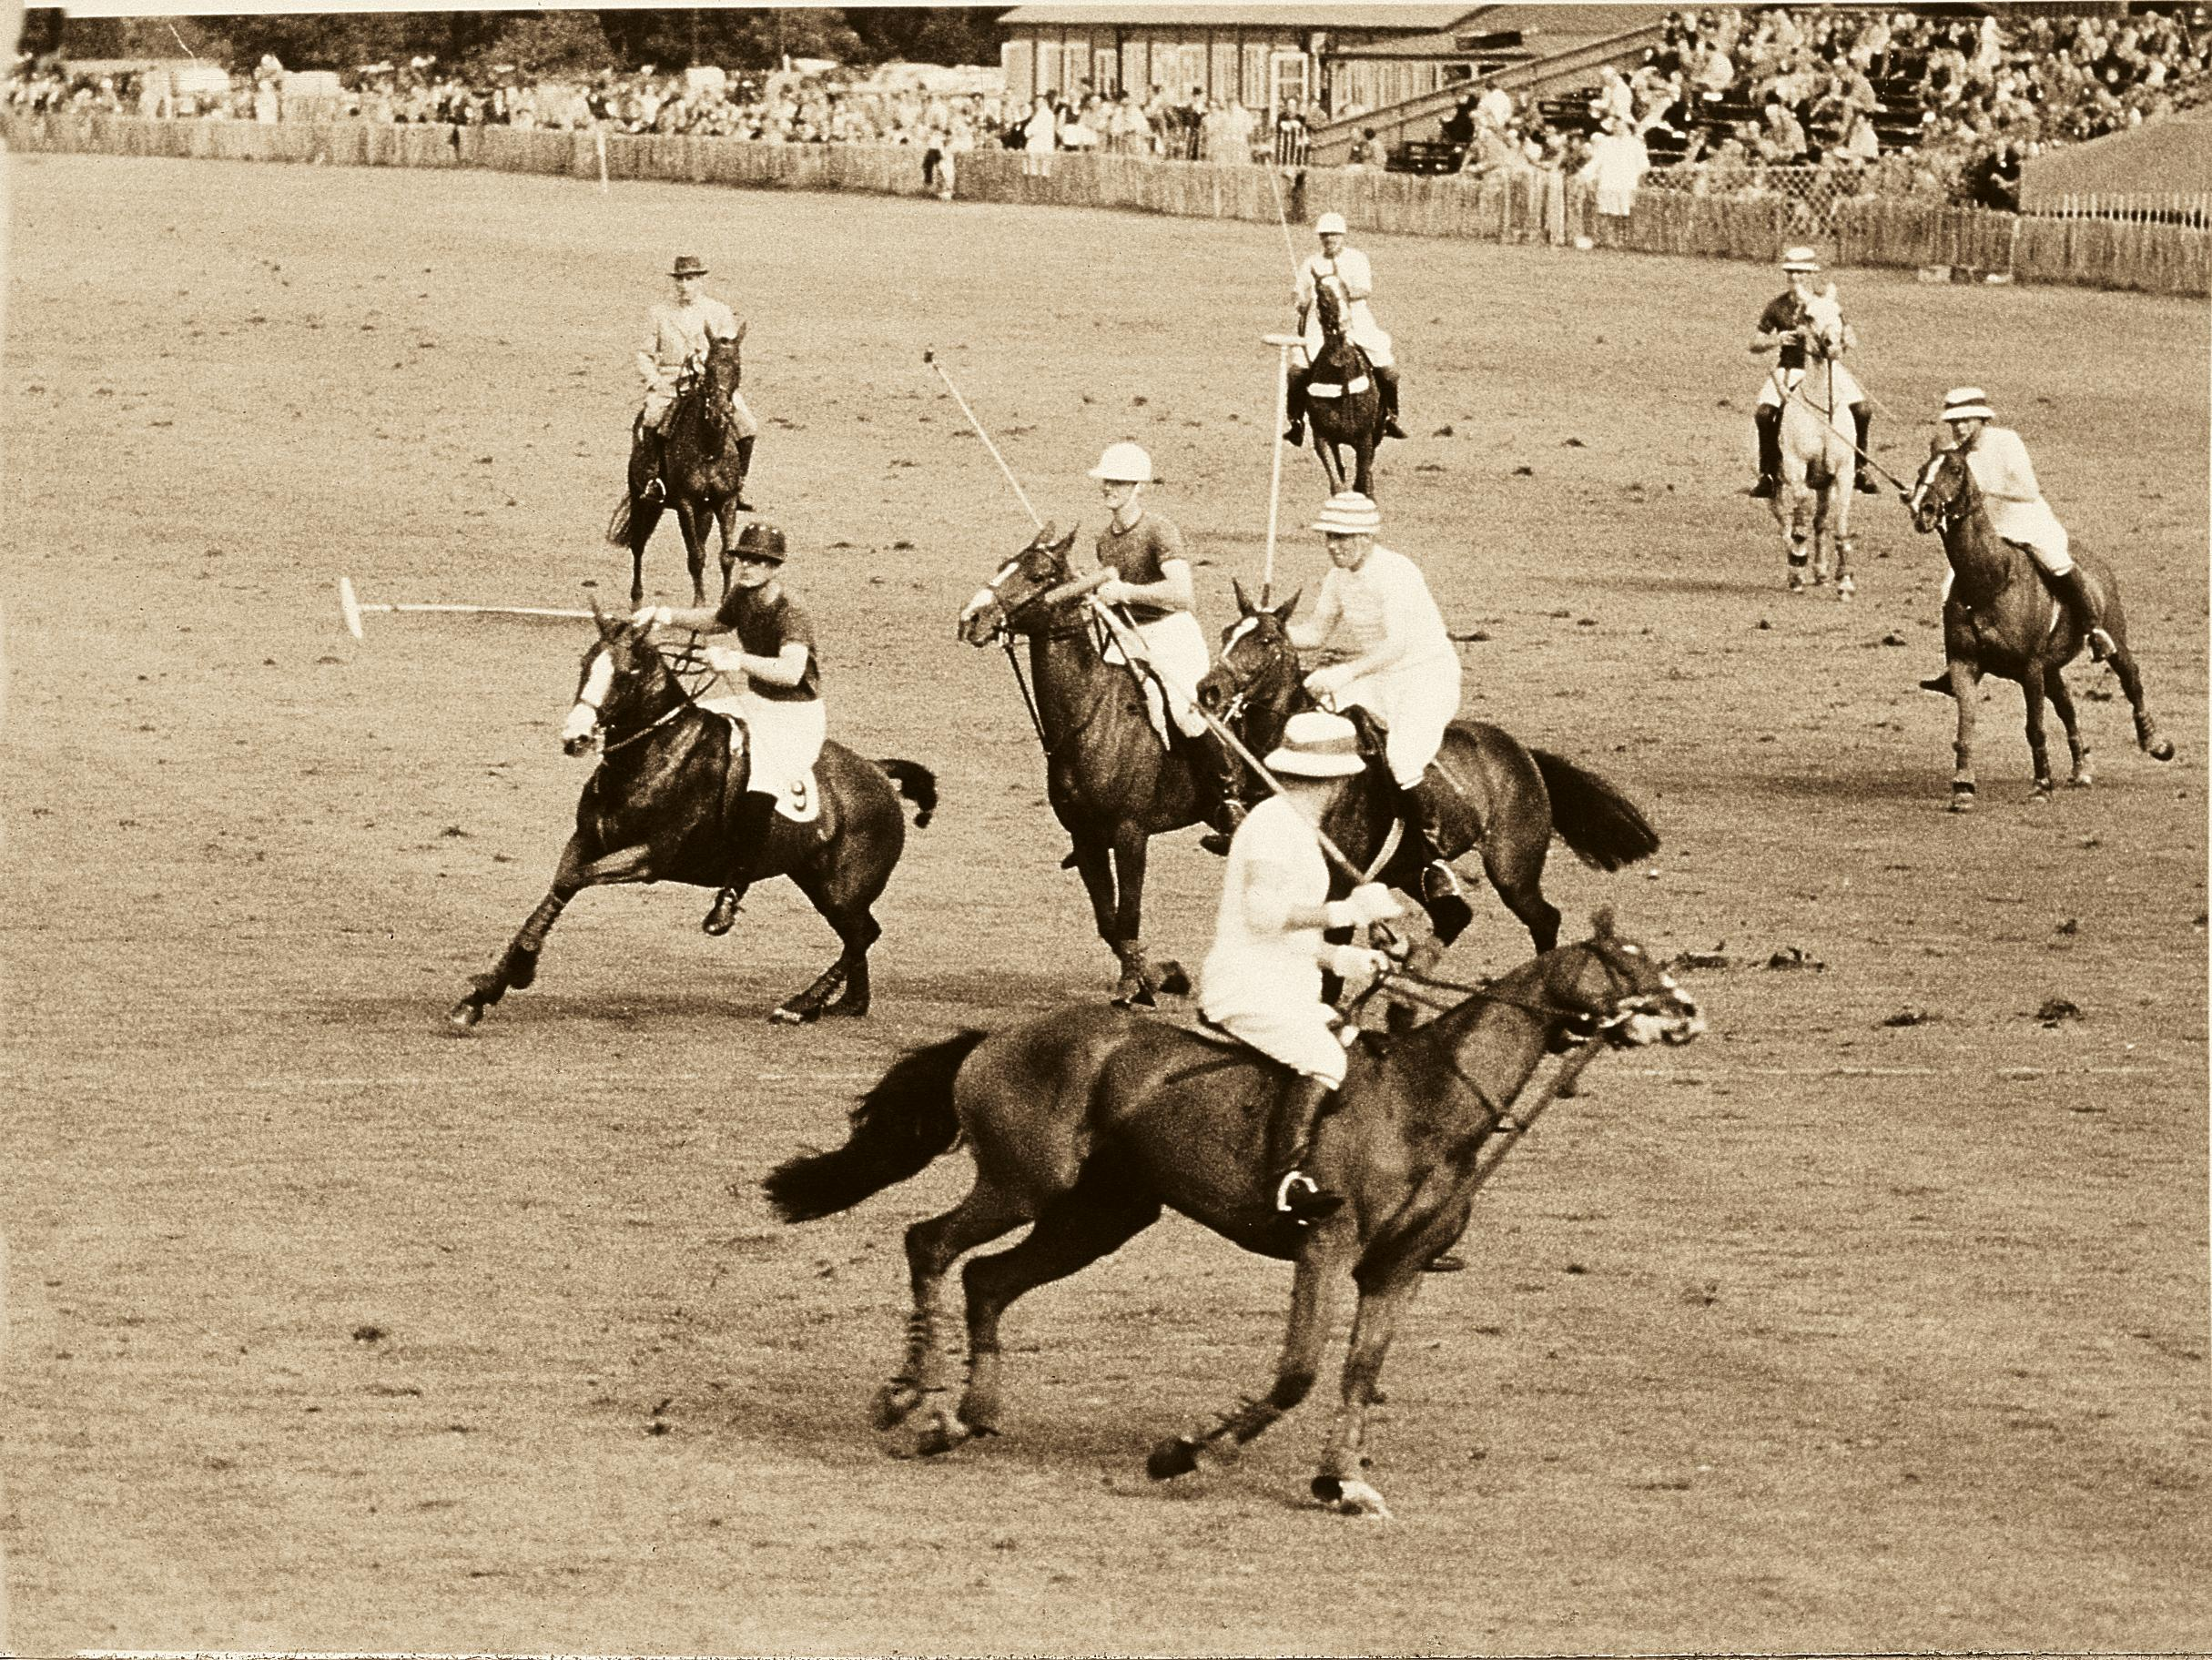 B&W image of a polo match in Jaipur from the 1930s in The Flippin' History of the Reverso for A Collected Man